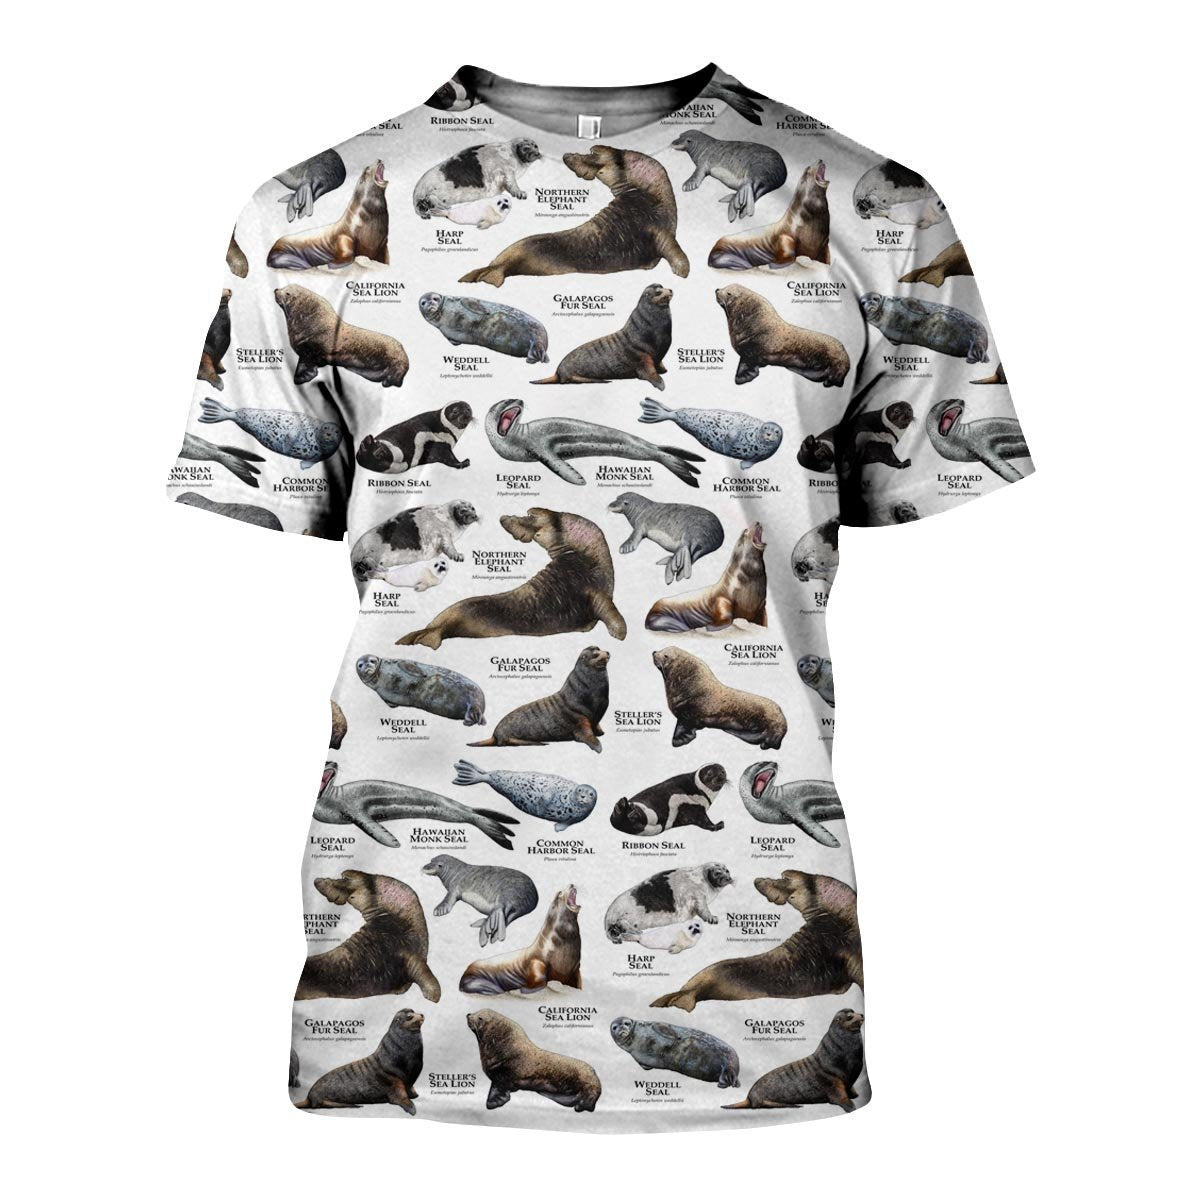 3D All Over Printed Seals and Sea Lions Of The World Shirts and Shorts - Amaze Style™-Apparel